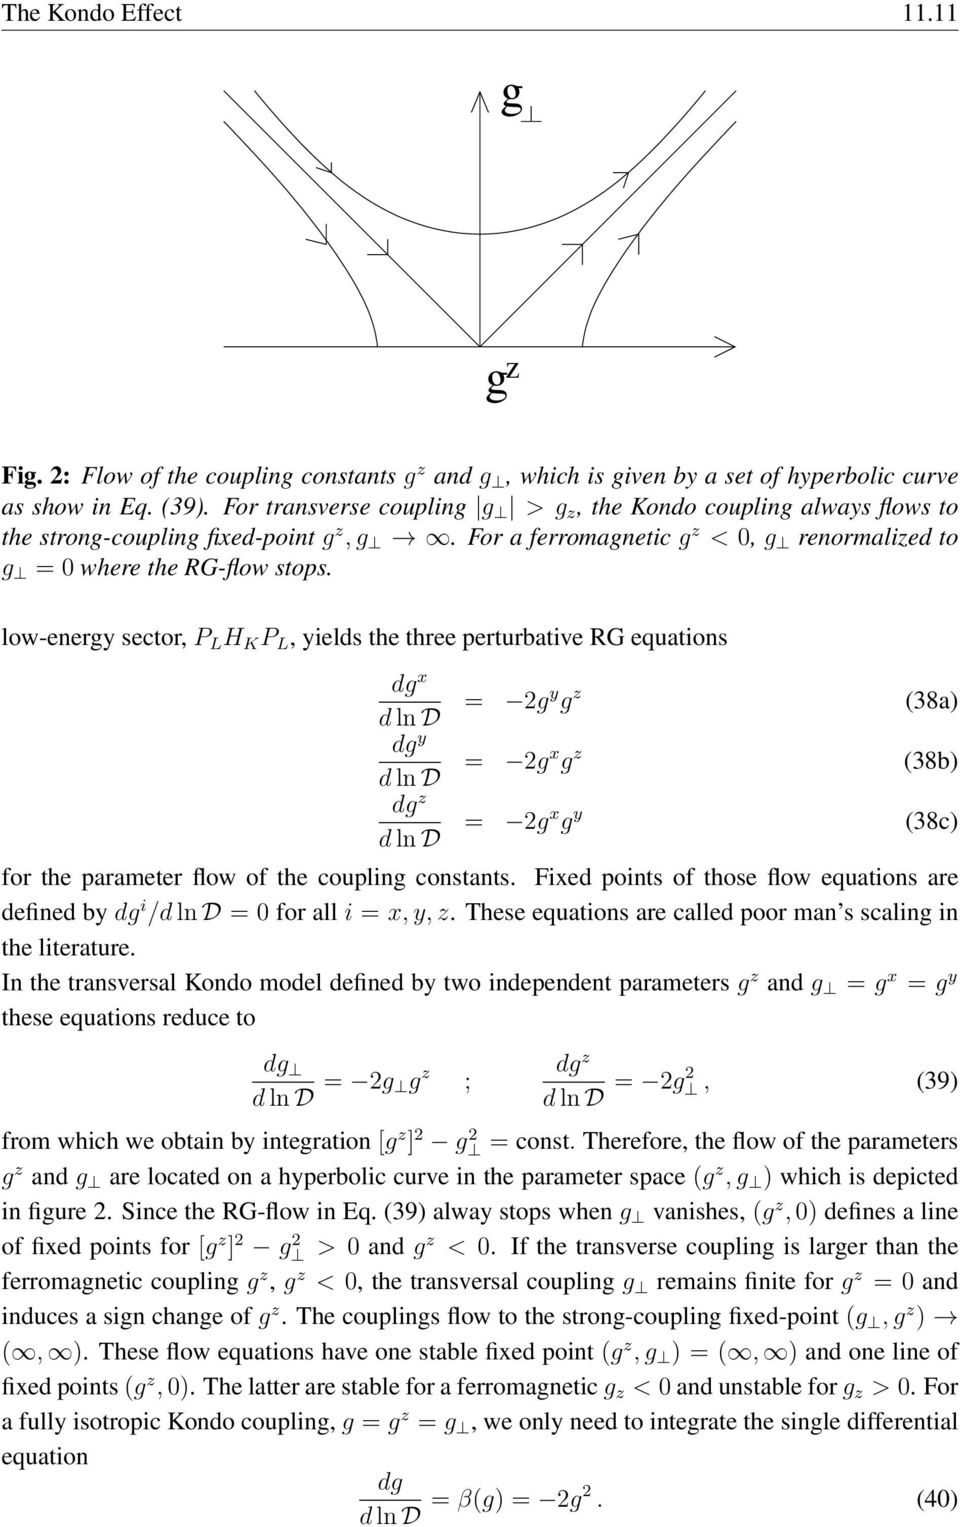 low-energy sector, P L H K P L, yields the three perturbative RG equations dg x d ln D = 2gy g z (38a) dg y d ln D = 2gx g z (38b) dg z d ln D = 2gx g y (38c) for the parameter flow of the coupling